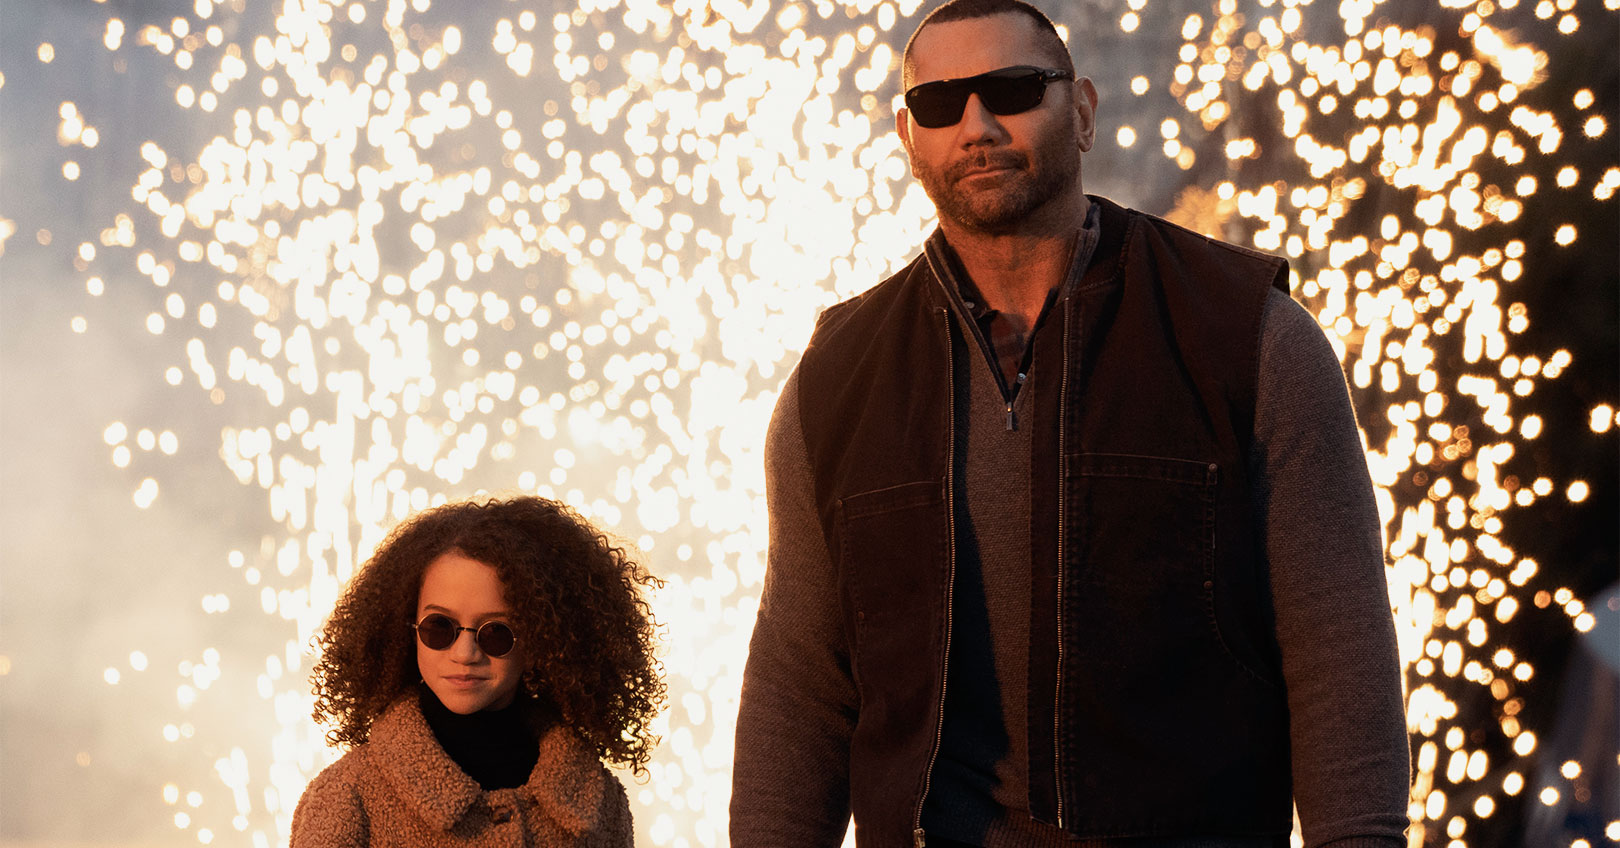 My Spy - Chloe Coleman and Dave Bautista